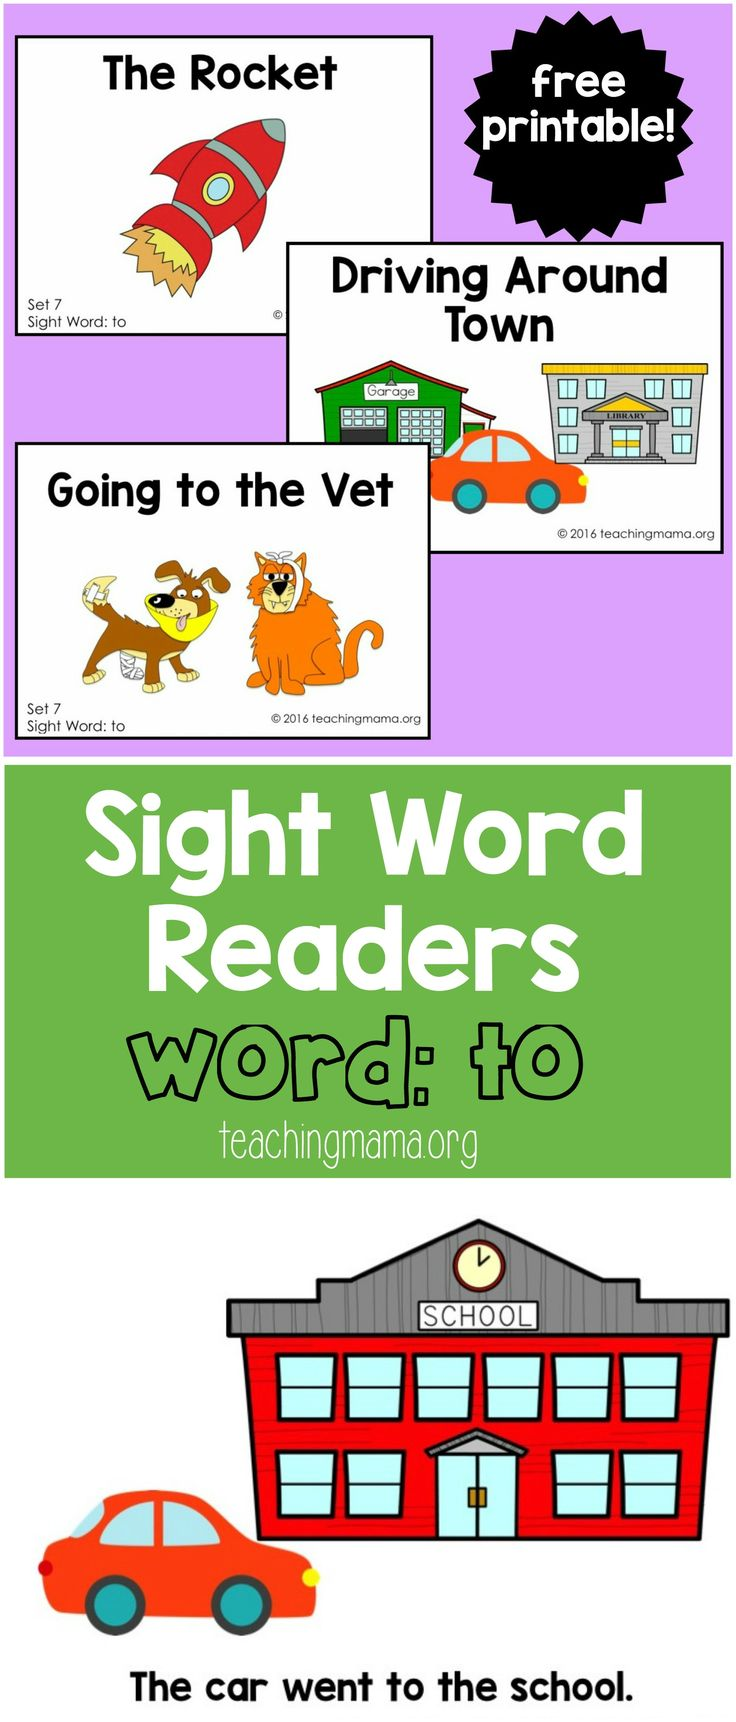 Sight Word Readers Word To (free printable)